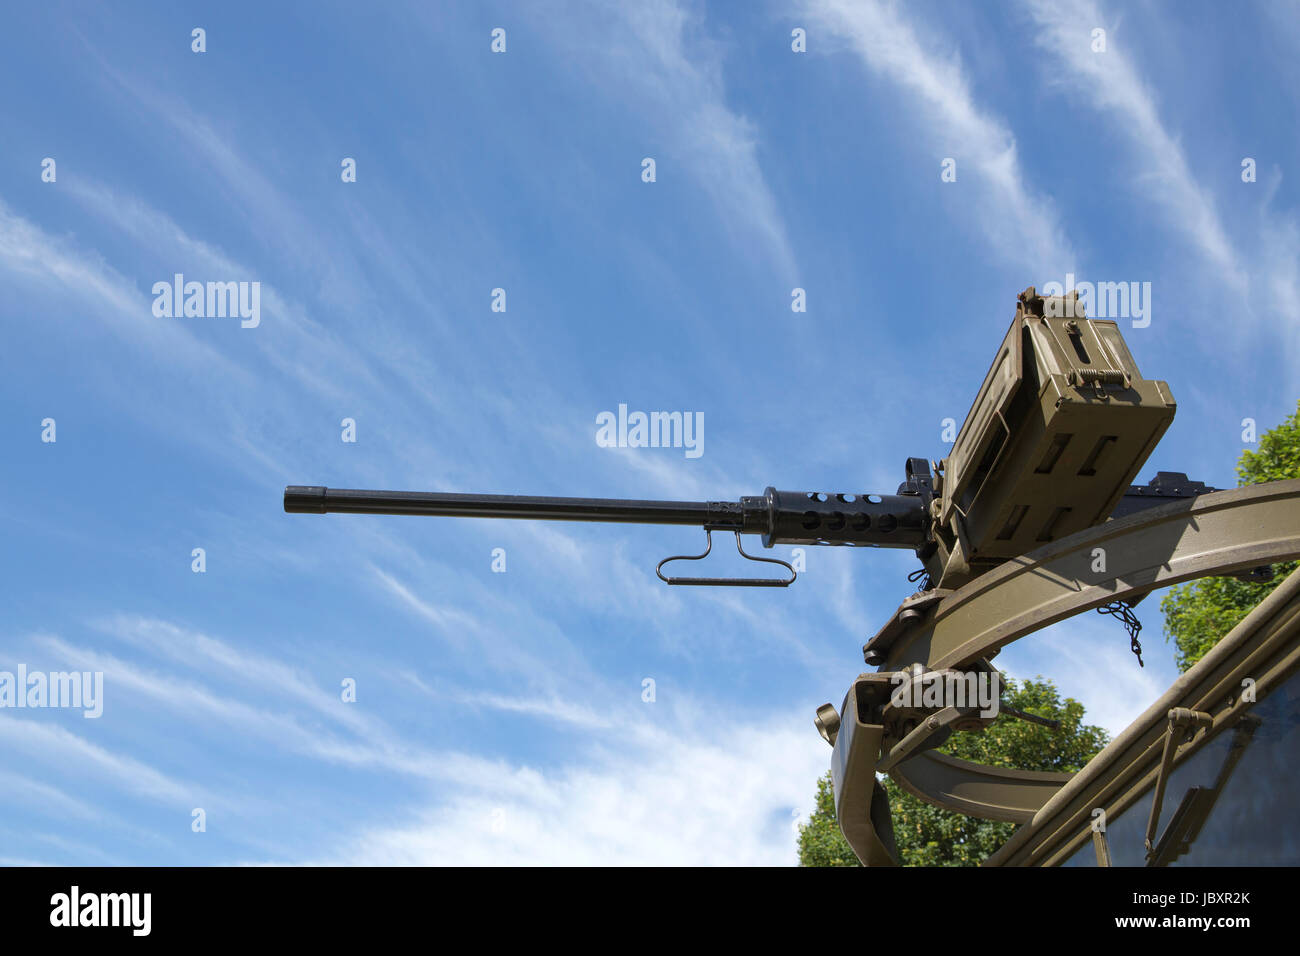 View looking up at a M2 Browning machine gun mounted on a scarff ring on top of a military truck. Blue sky and cloud - Stock Image